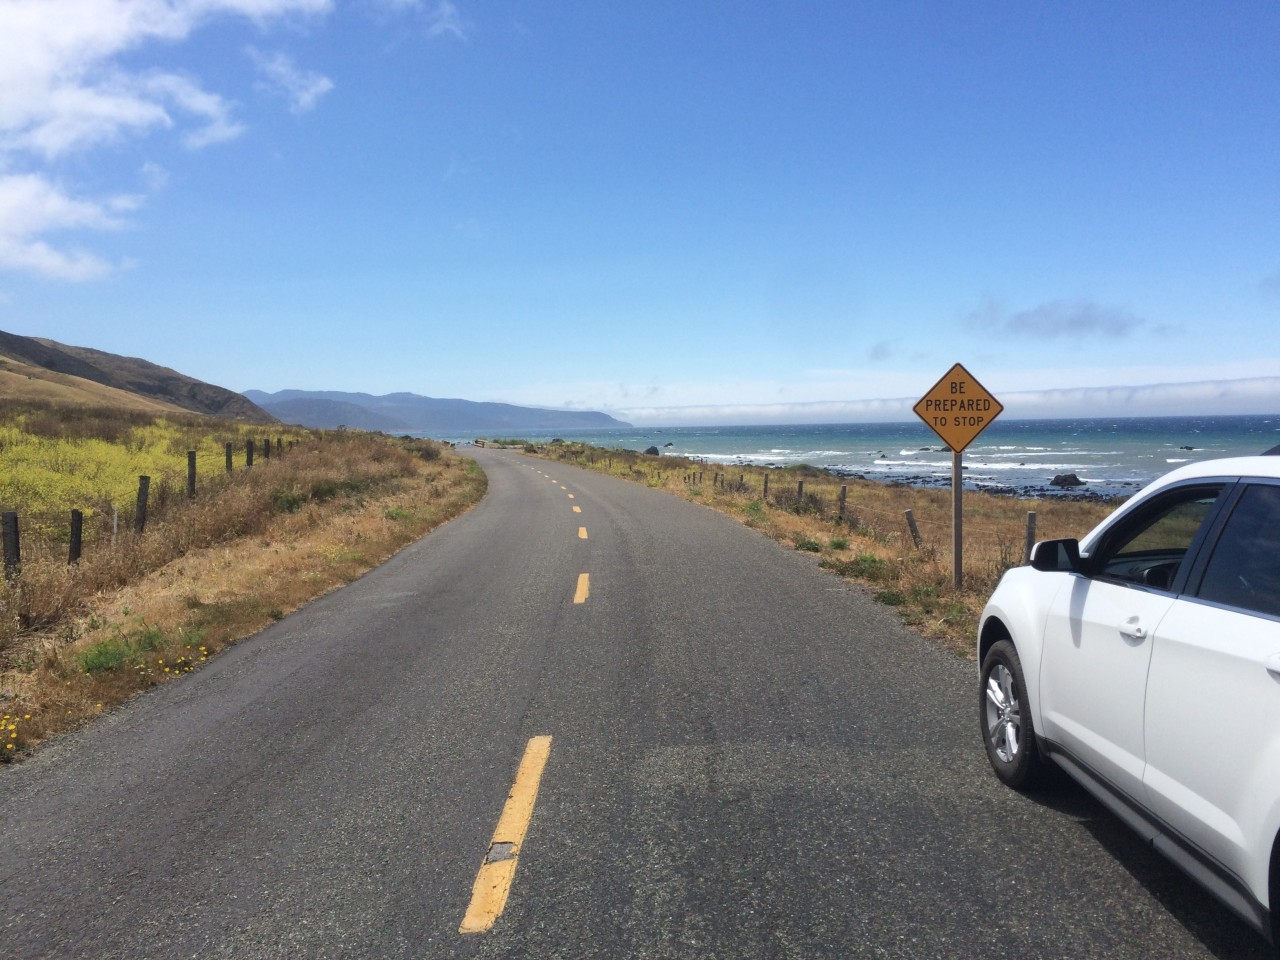 Seattle to San Francisco, The Pacific Coast Highway